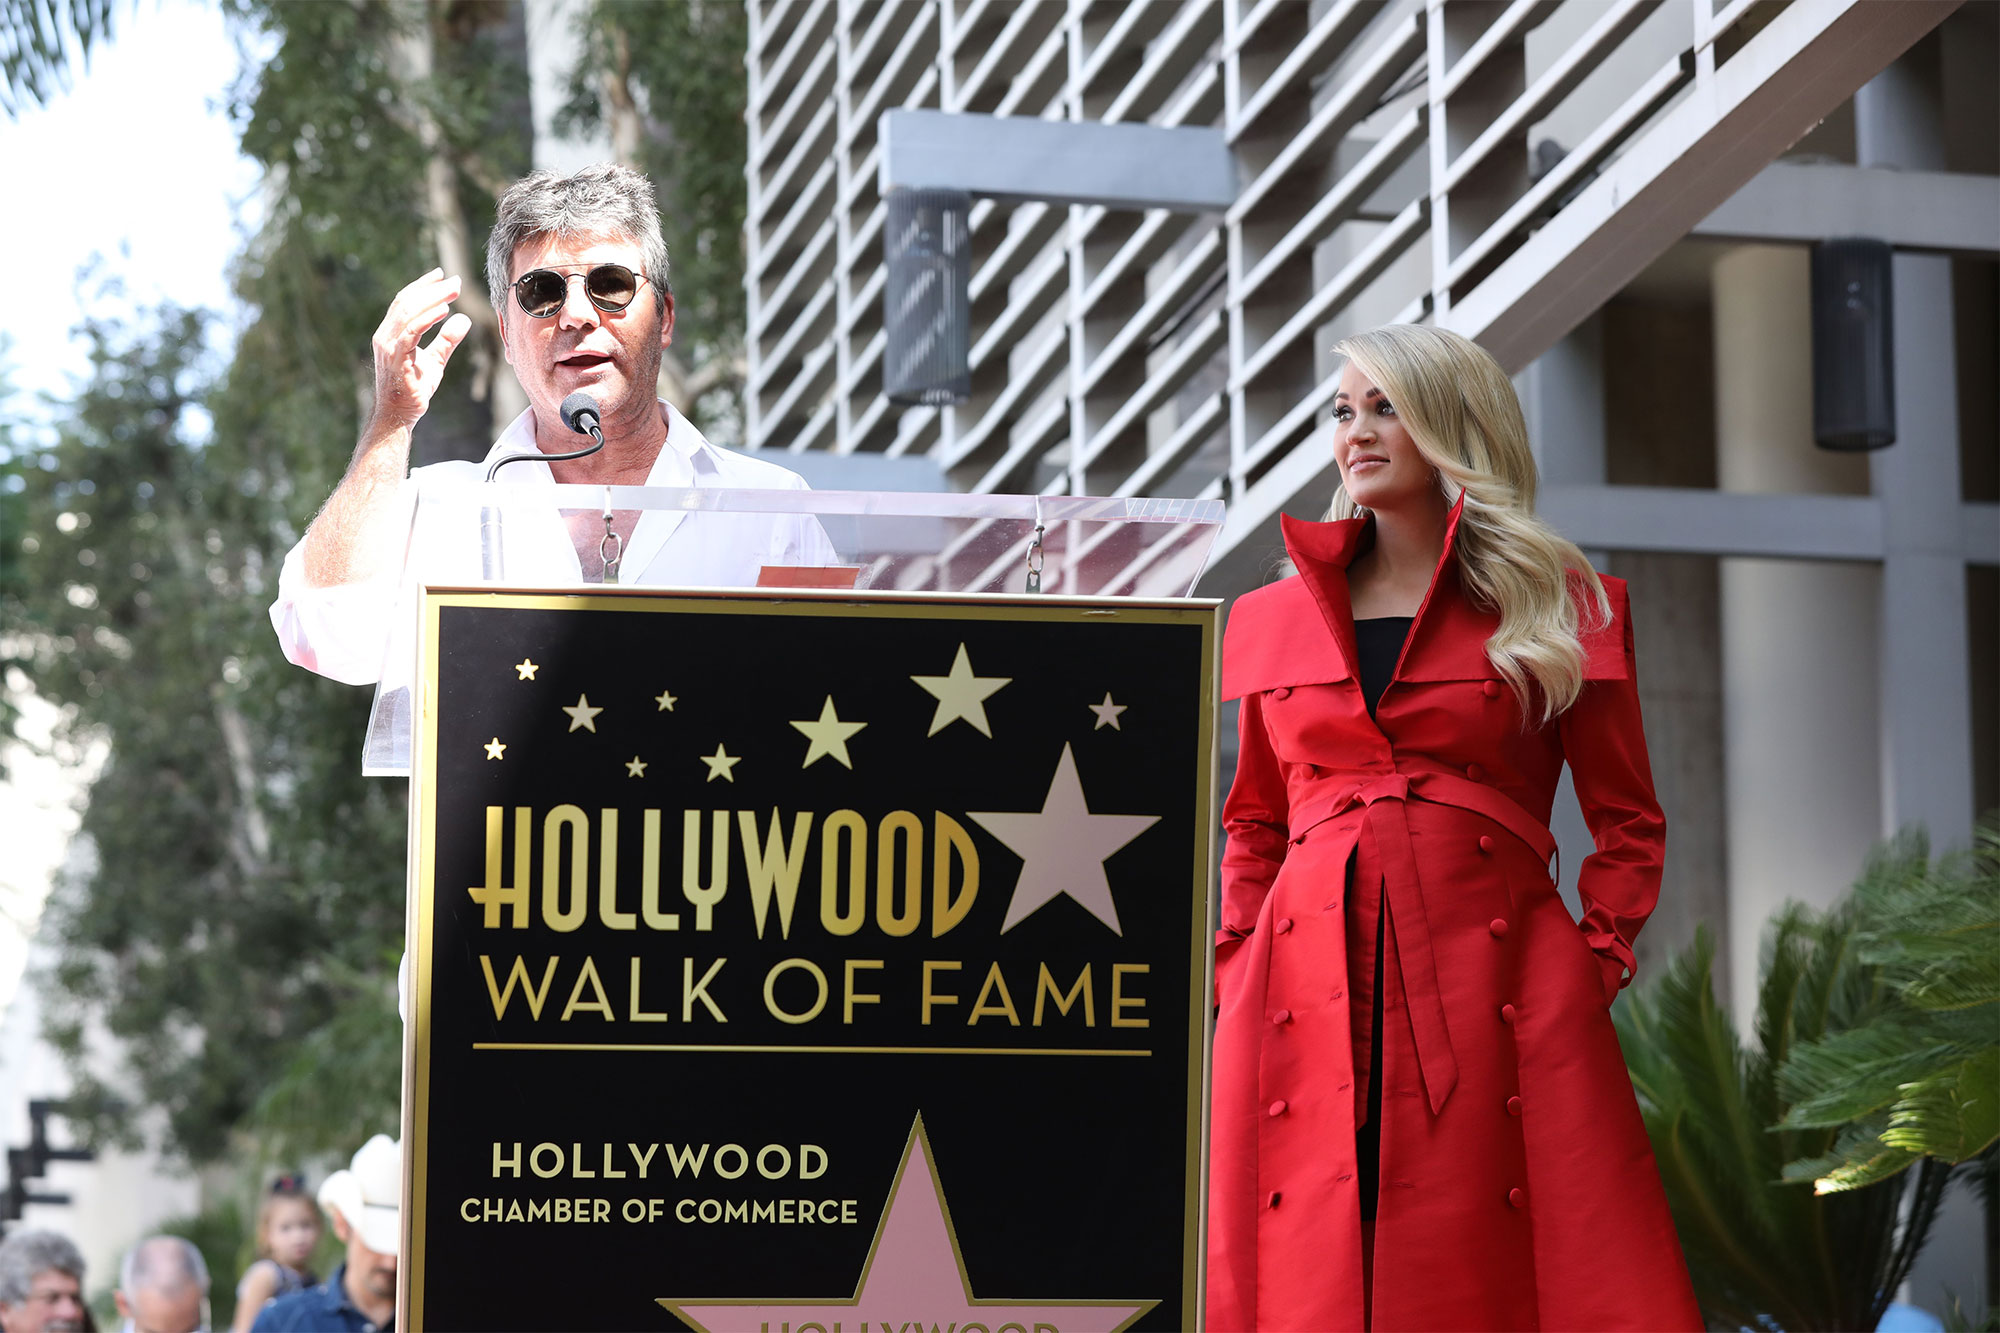 Carrie Underwood honored with Star on the Hollywood Walk of Fame, Los Angeles, USA - 20 Sep 2018